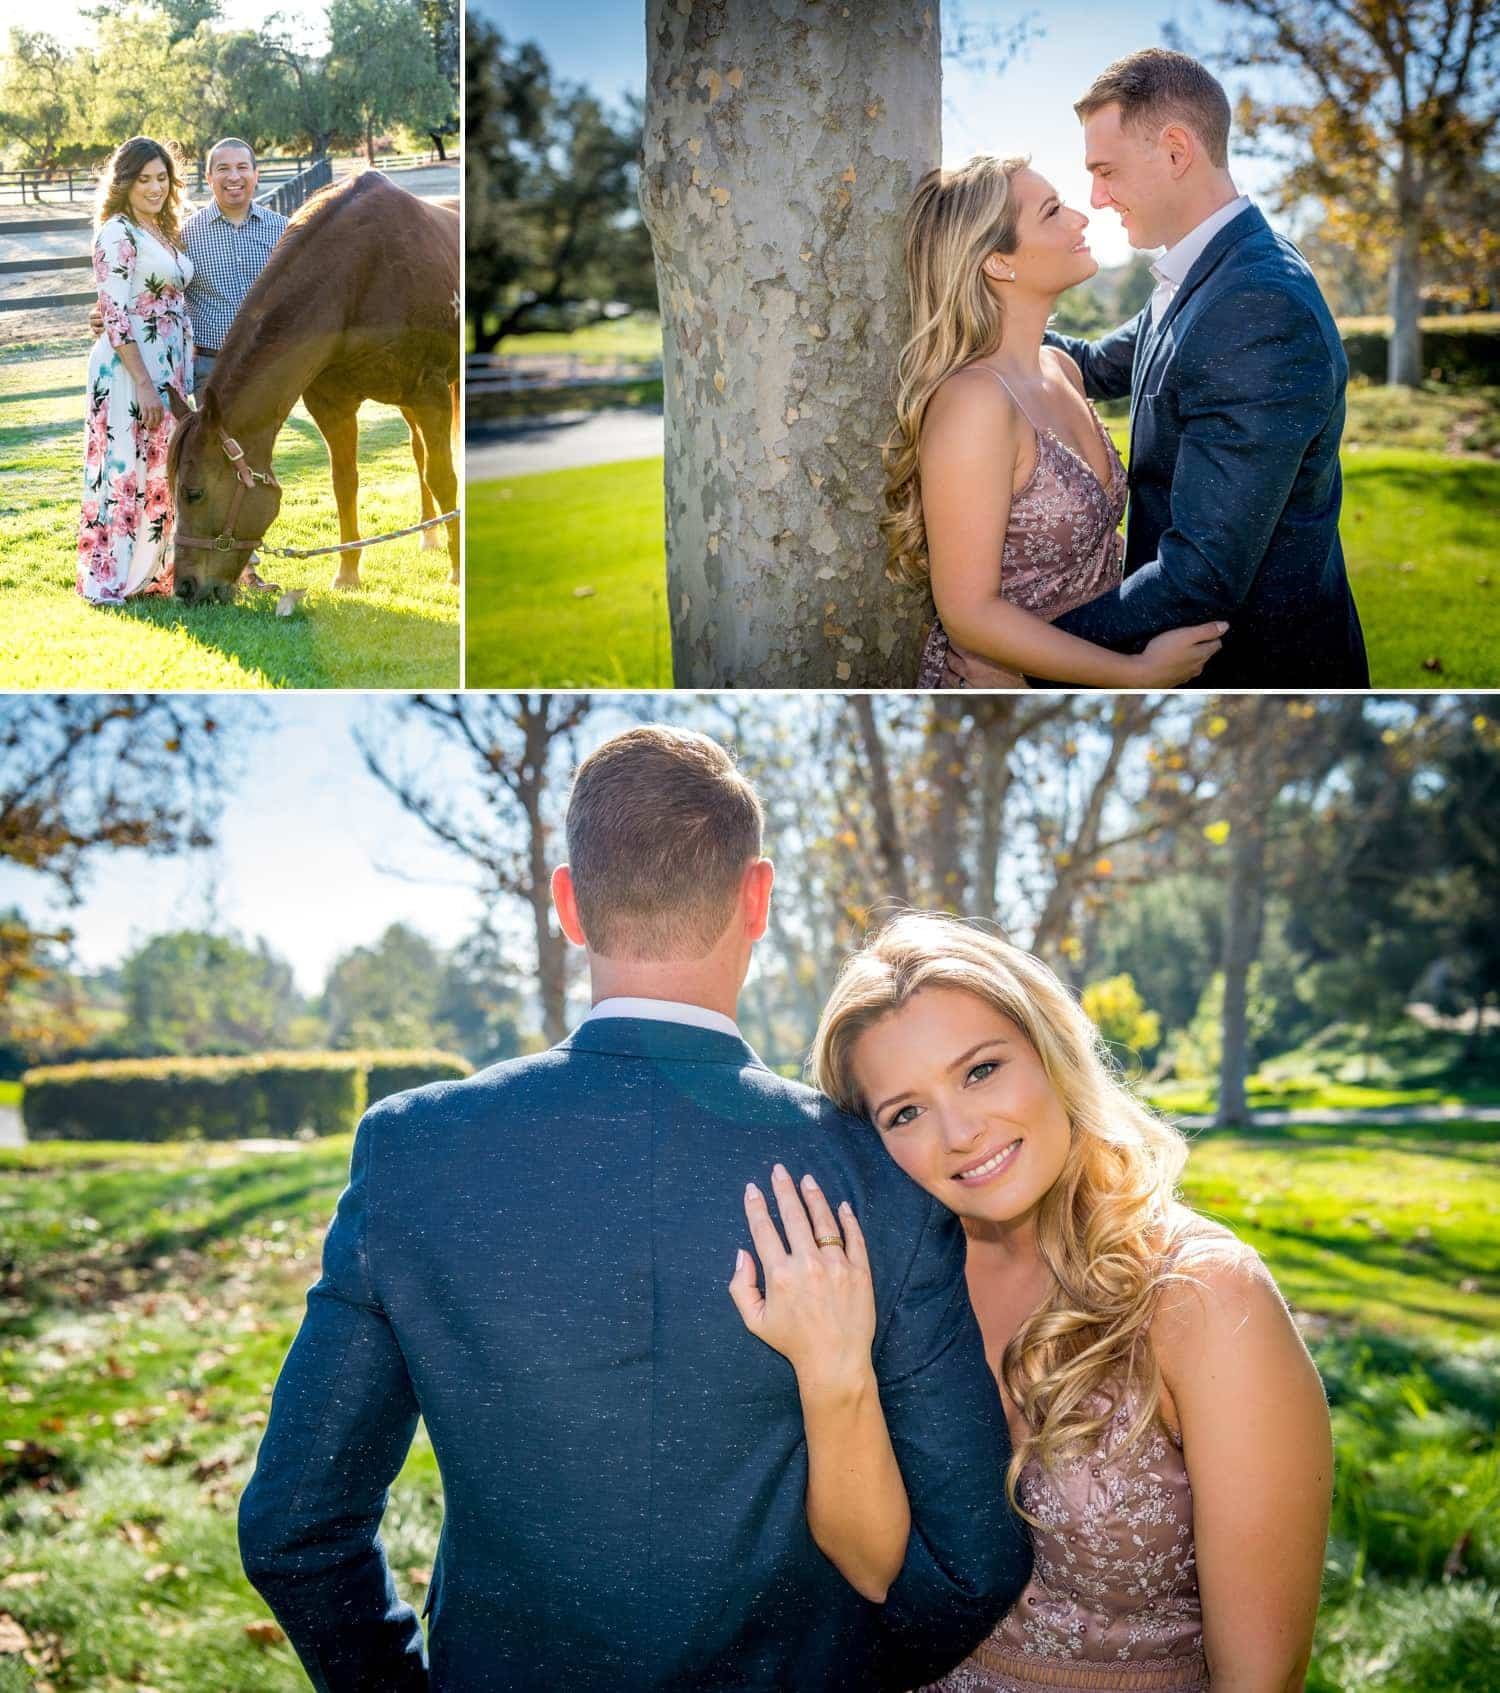 Couple posing for a photo with a horse.